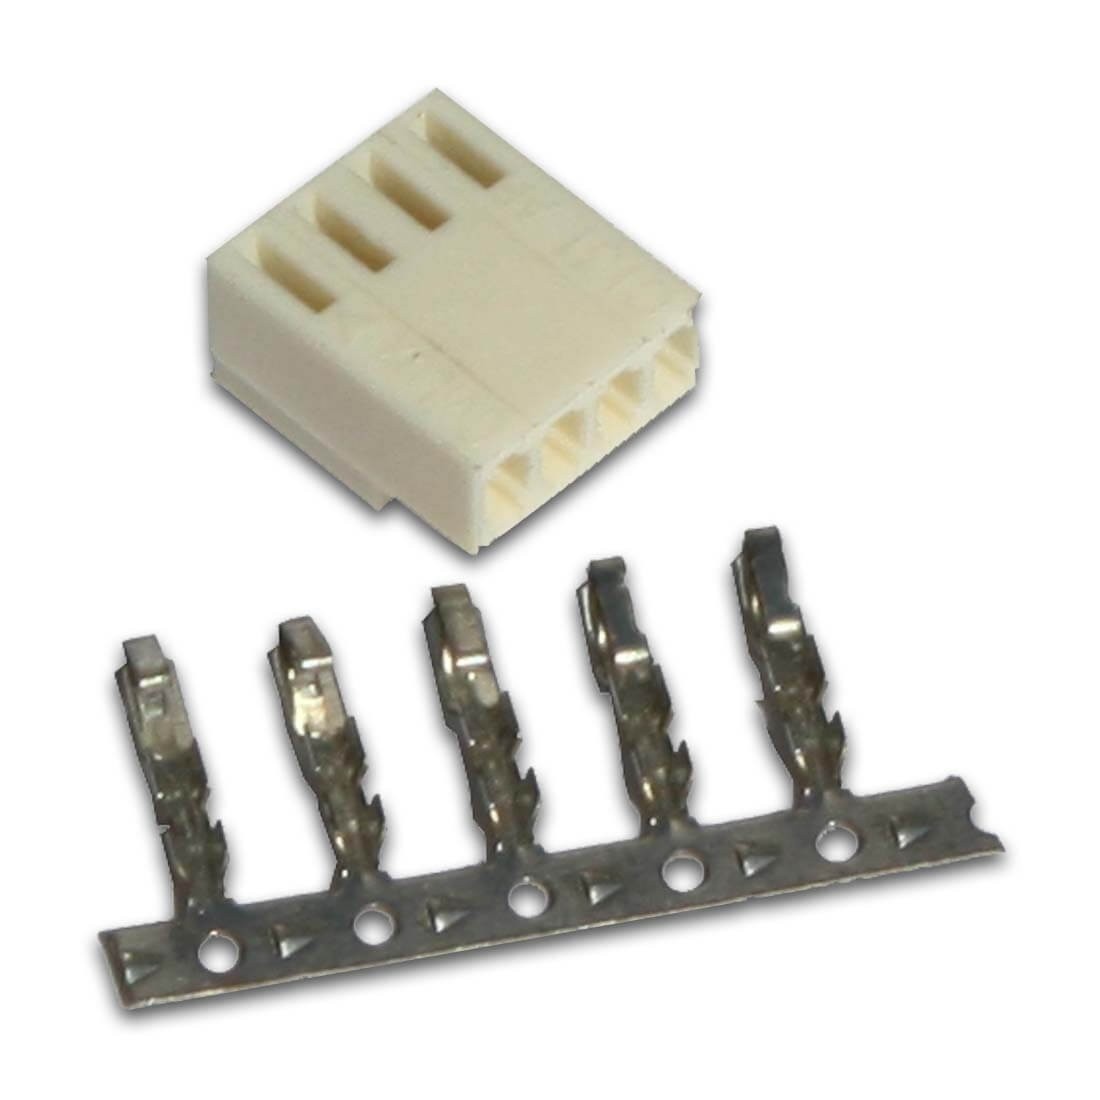 I2C Connector (for cable assembly)